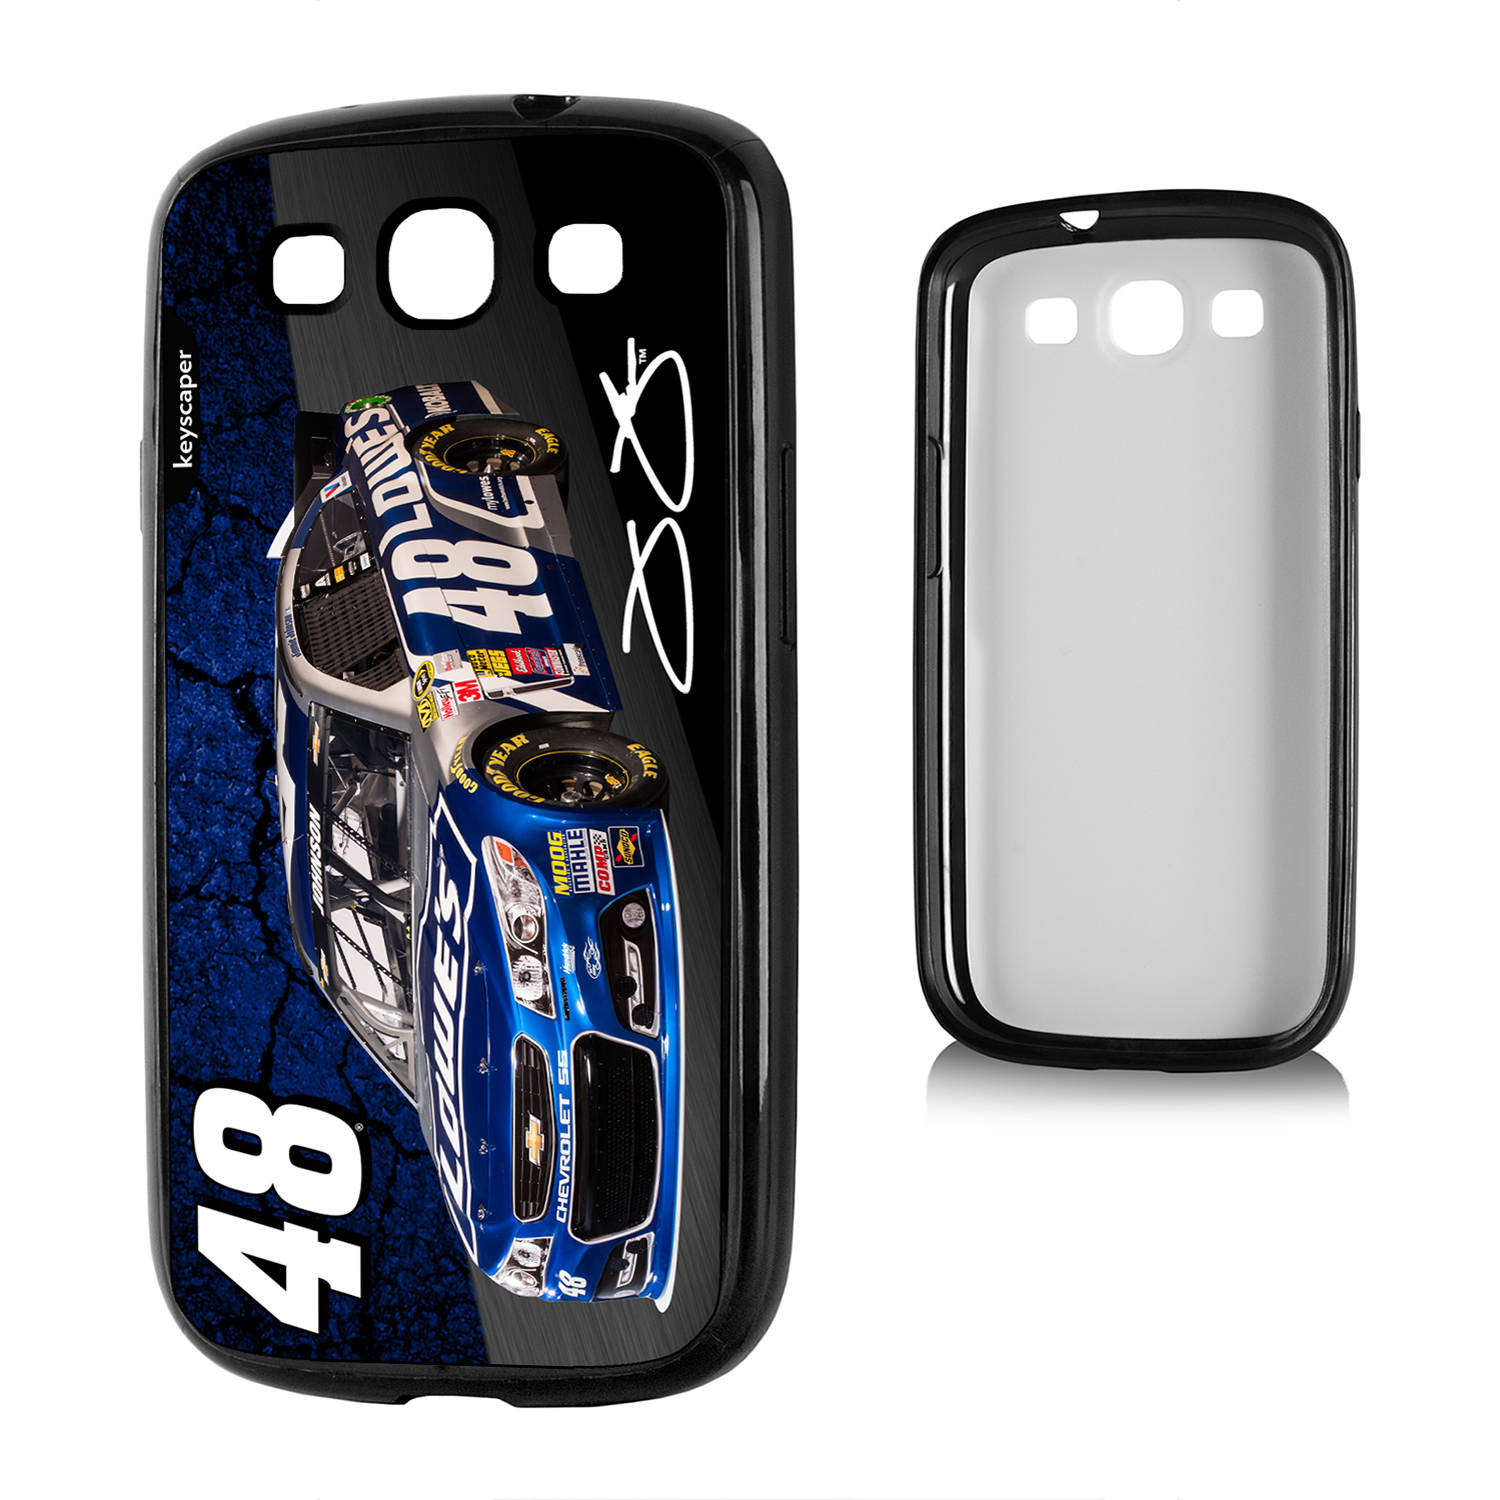 Jimmie Johnson #48 Galaxy S3 Bumper Case